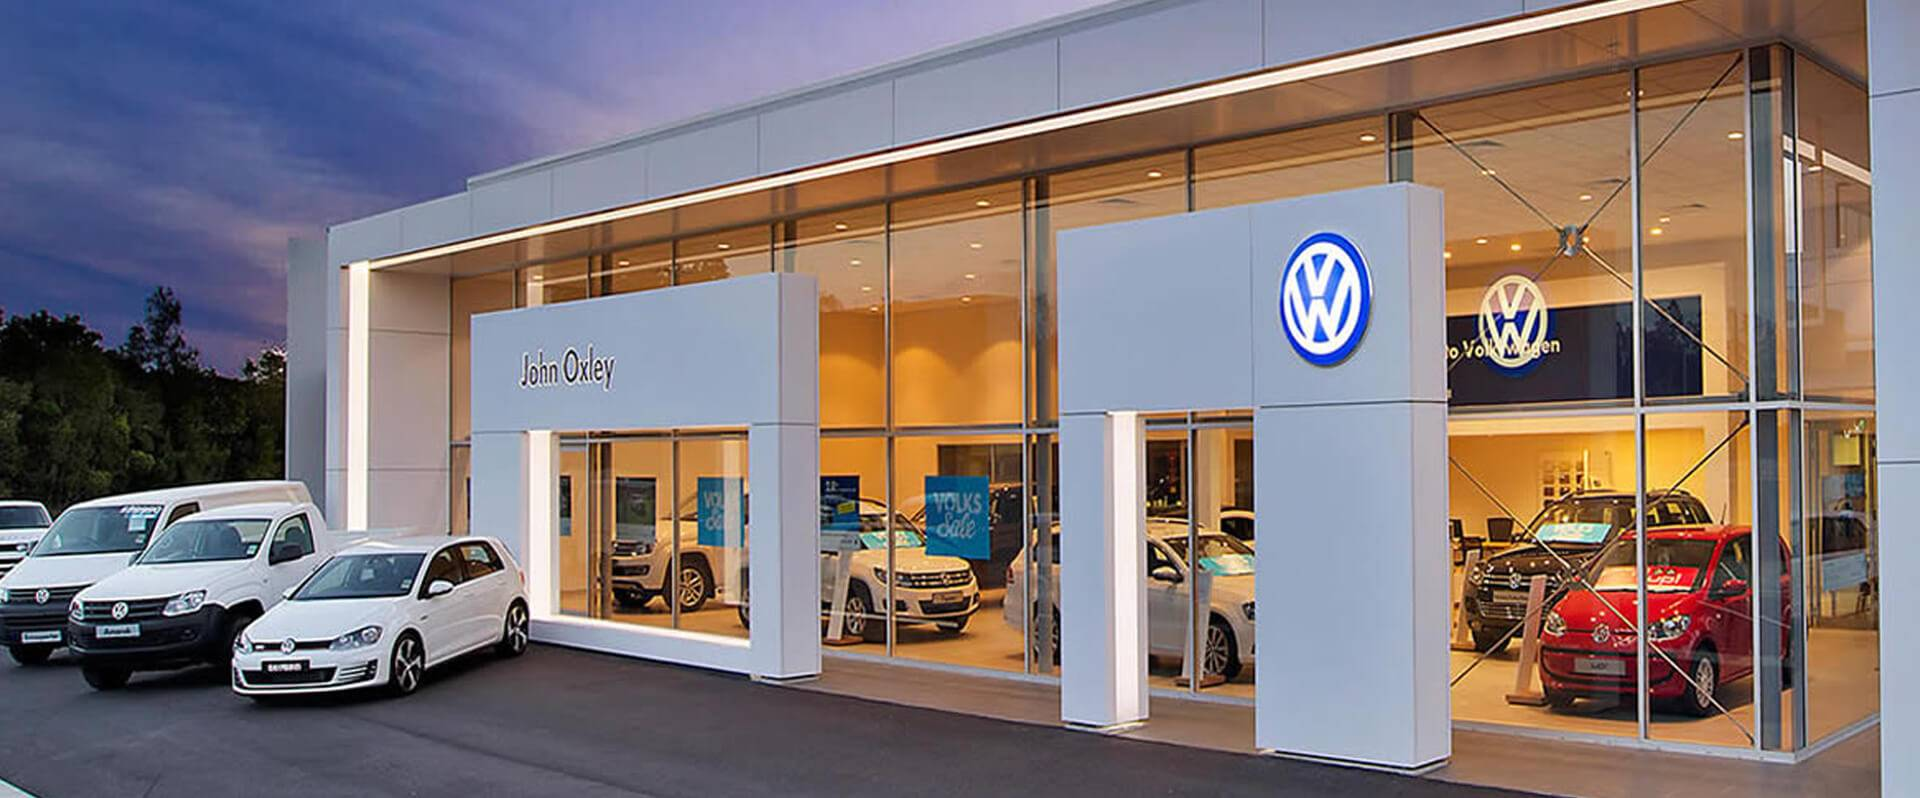 John Oxley VW